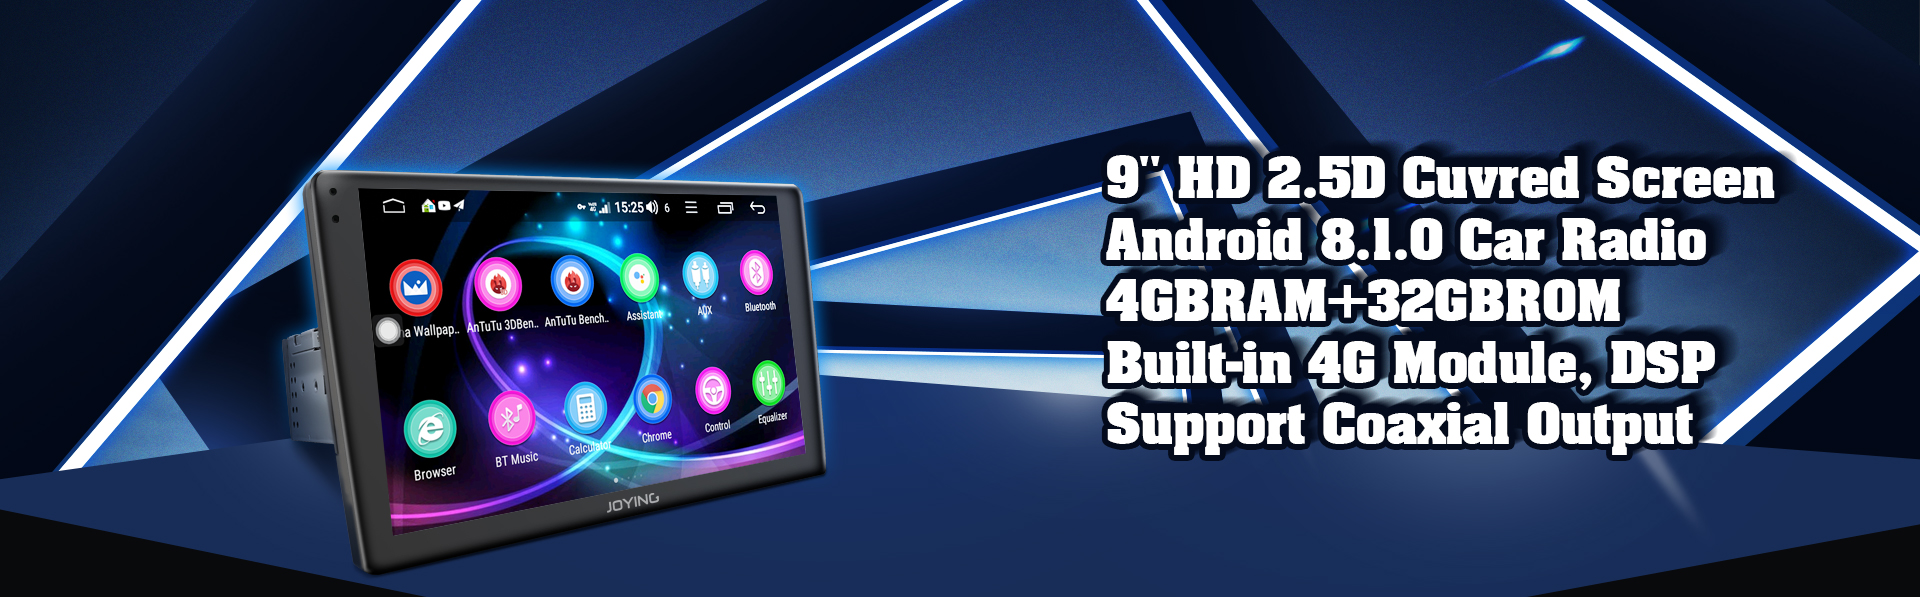 4G lte car stereo,1 din android autoradio, single din touch screen, android 8.0 head unit